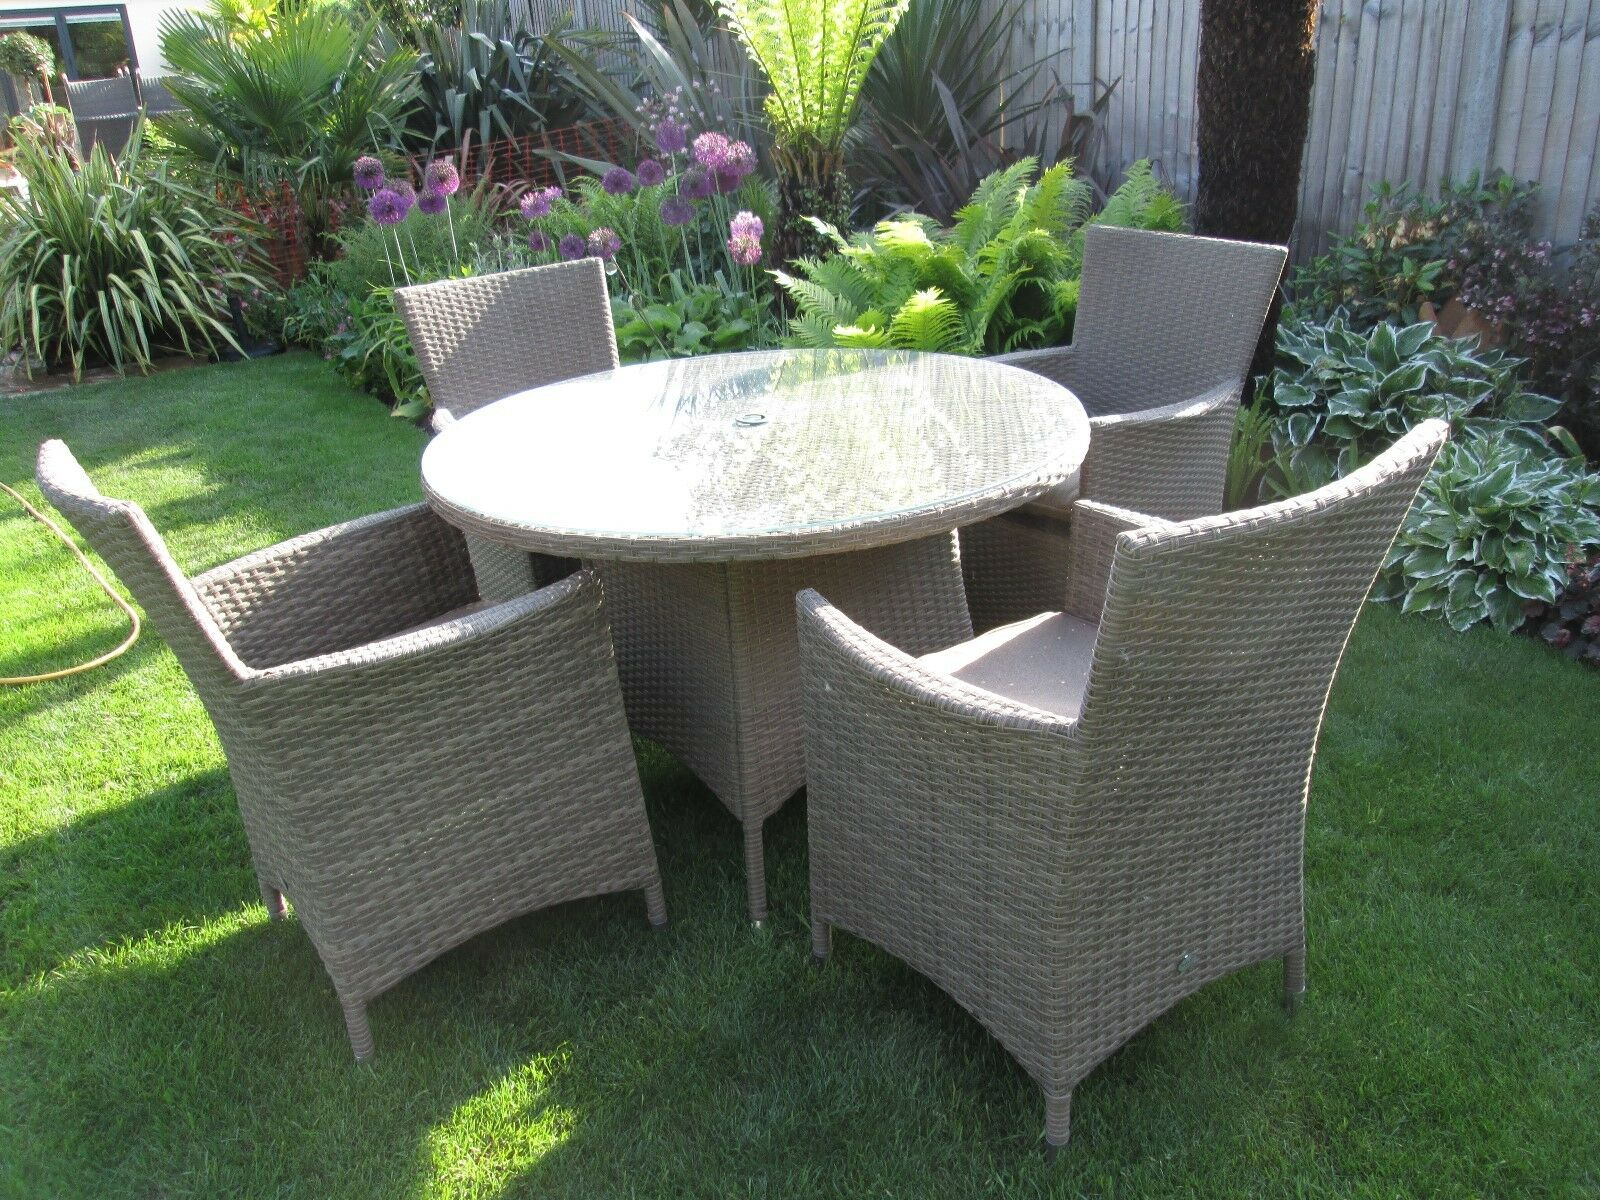 Quality hartman rattan garden furniture set 4 chairs for Quality patio furniture